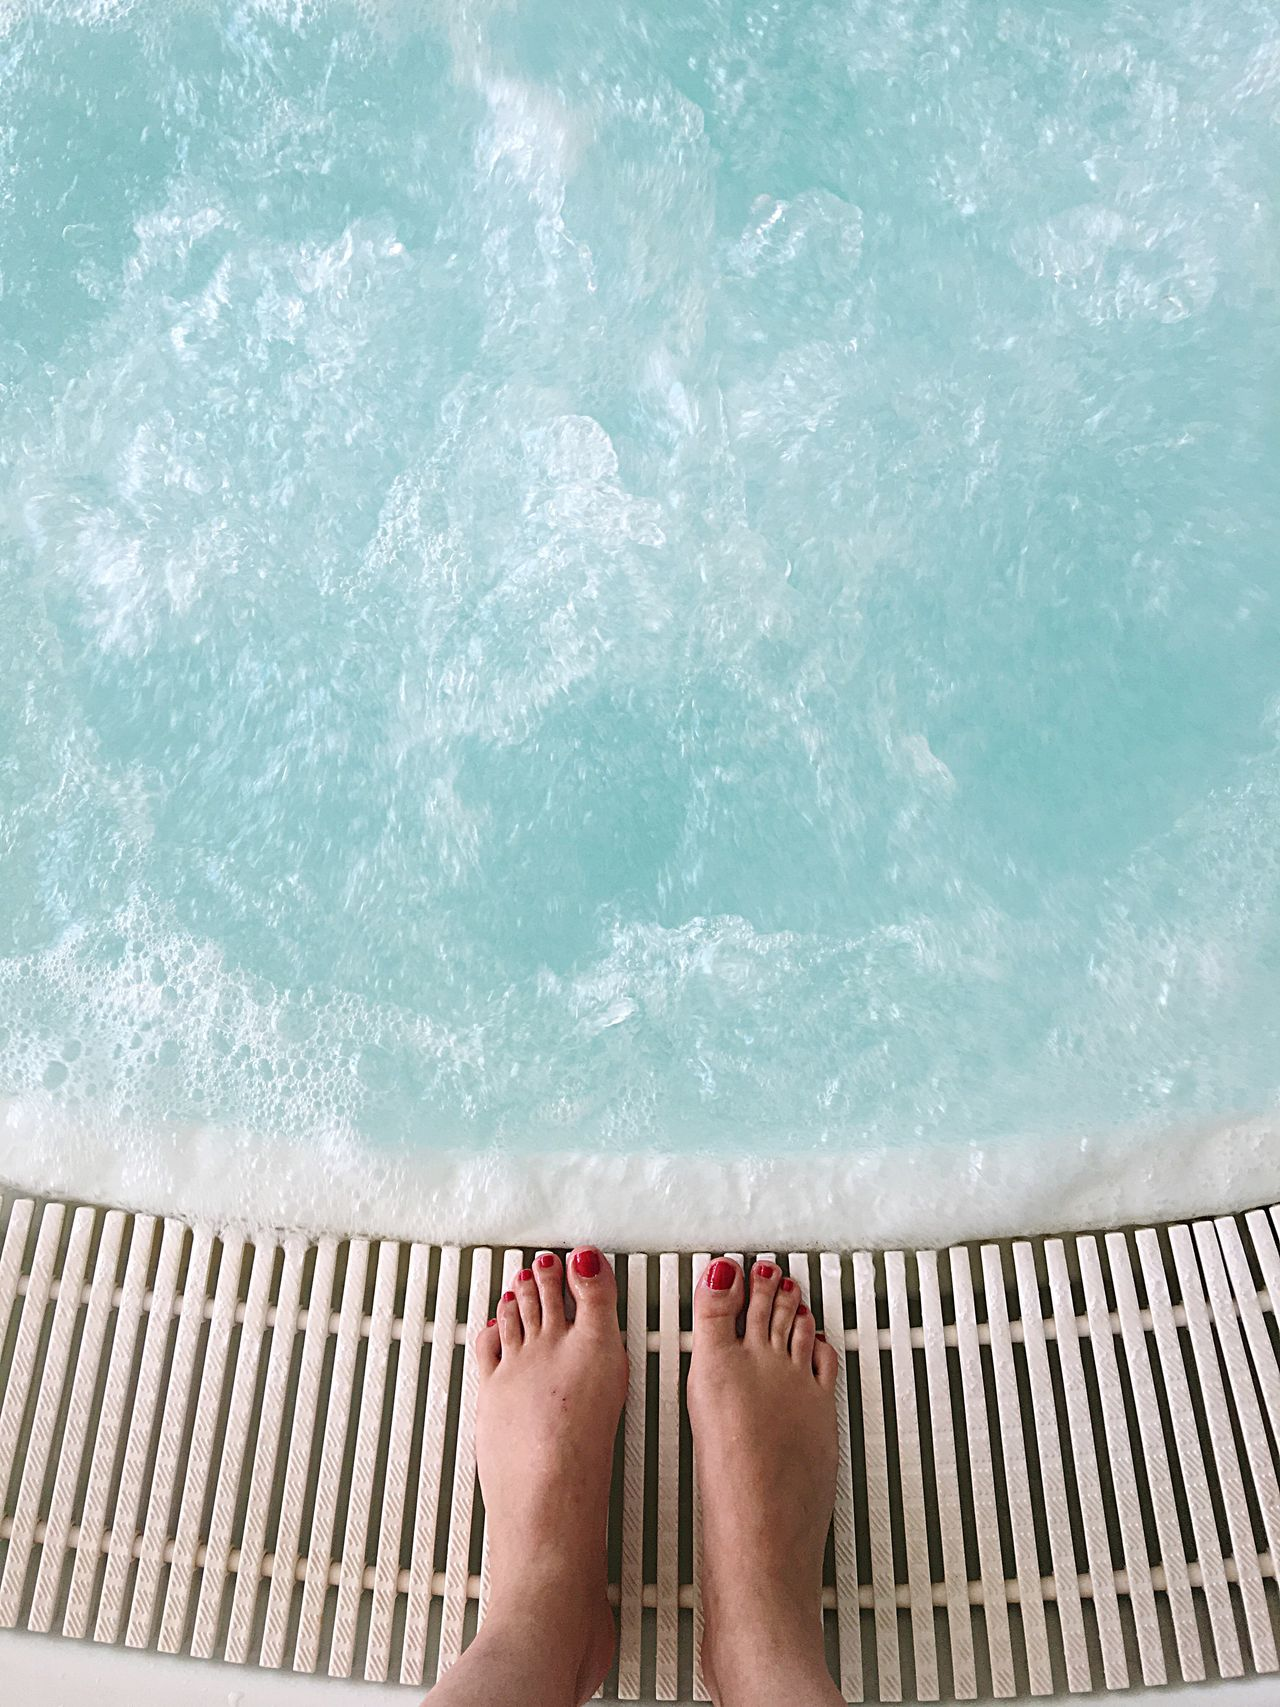 Summer Water One Person Low Section Human Leg Barefoot Human Body Part Real People Outdoors Swimming Pool Leisure Activity Women Pool Sea Standing Lifestyles One Woman Only Close-up Adult Adults Only Vacations Bubble Bath Bubbles Poolside Jakuzzi Live For The Story